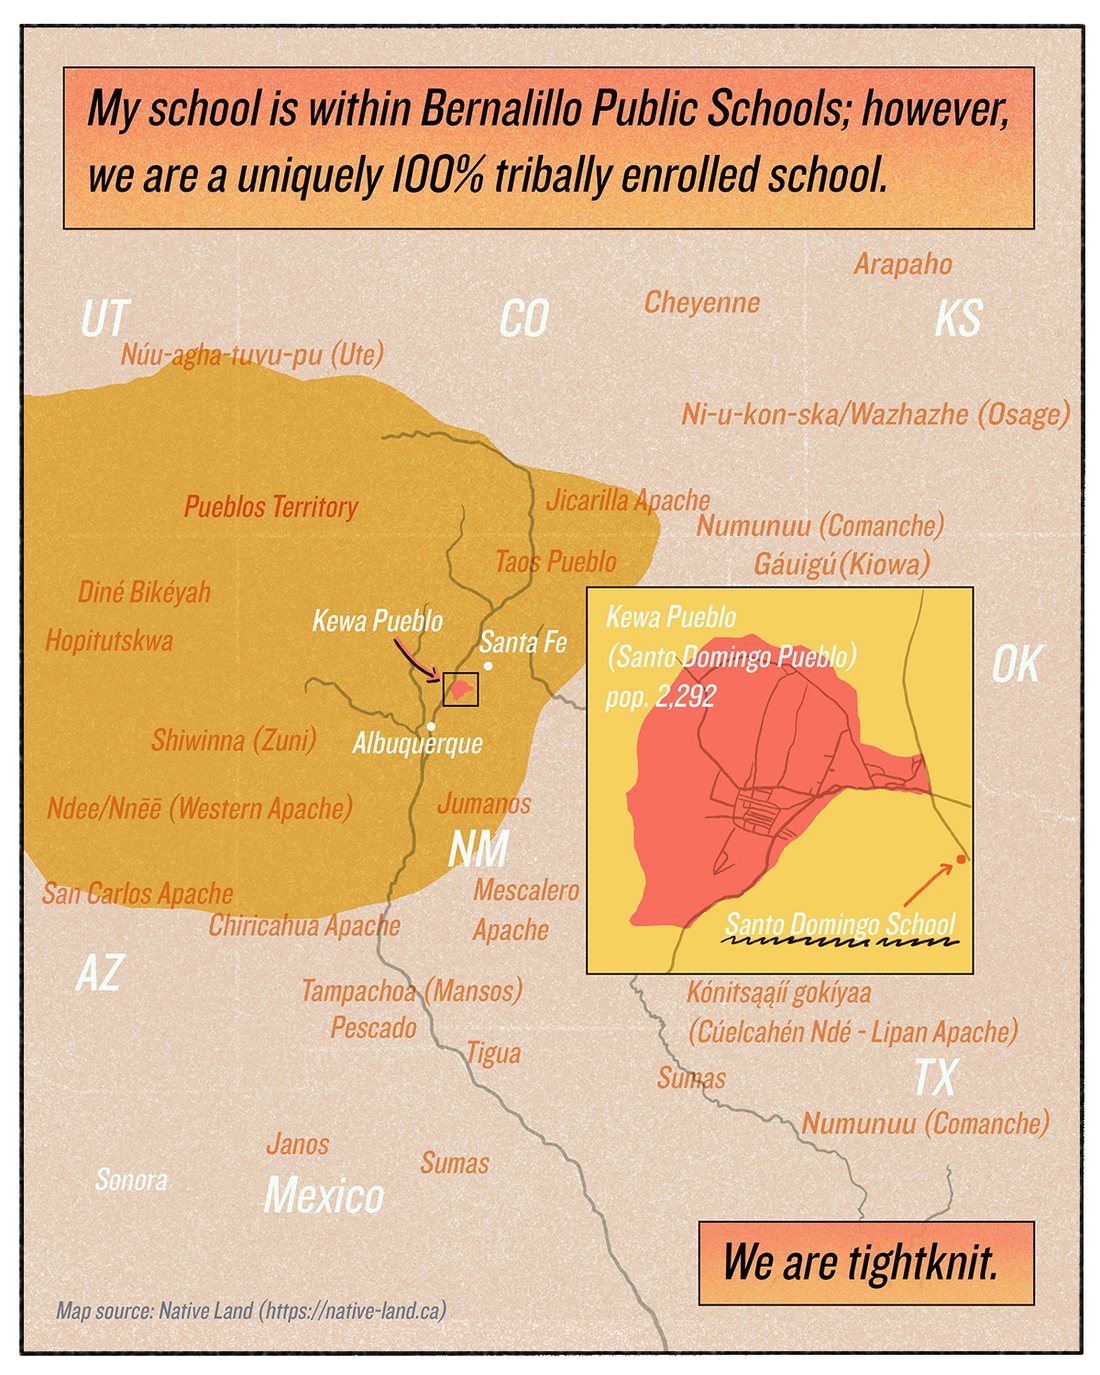 My school is within Bernalillo Public Schools; however, we are a uniquely 100% tribally enrolled school. We are tightknit.